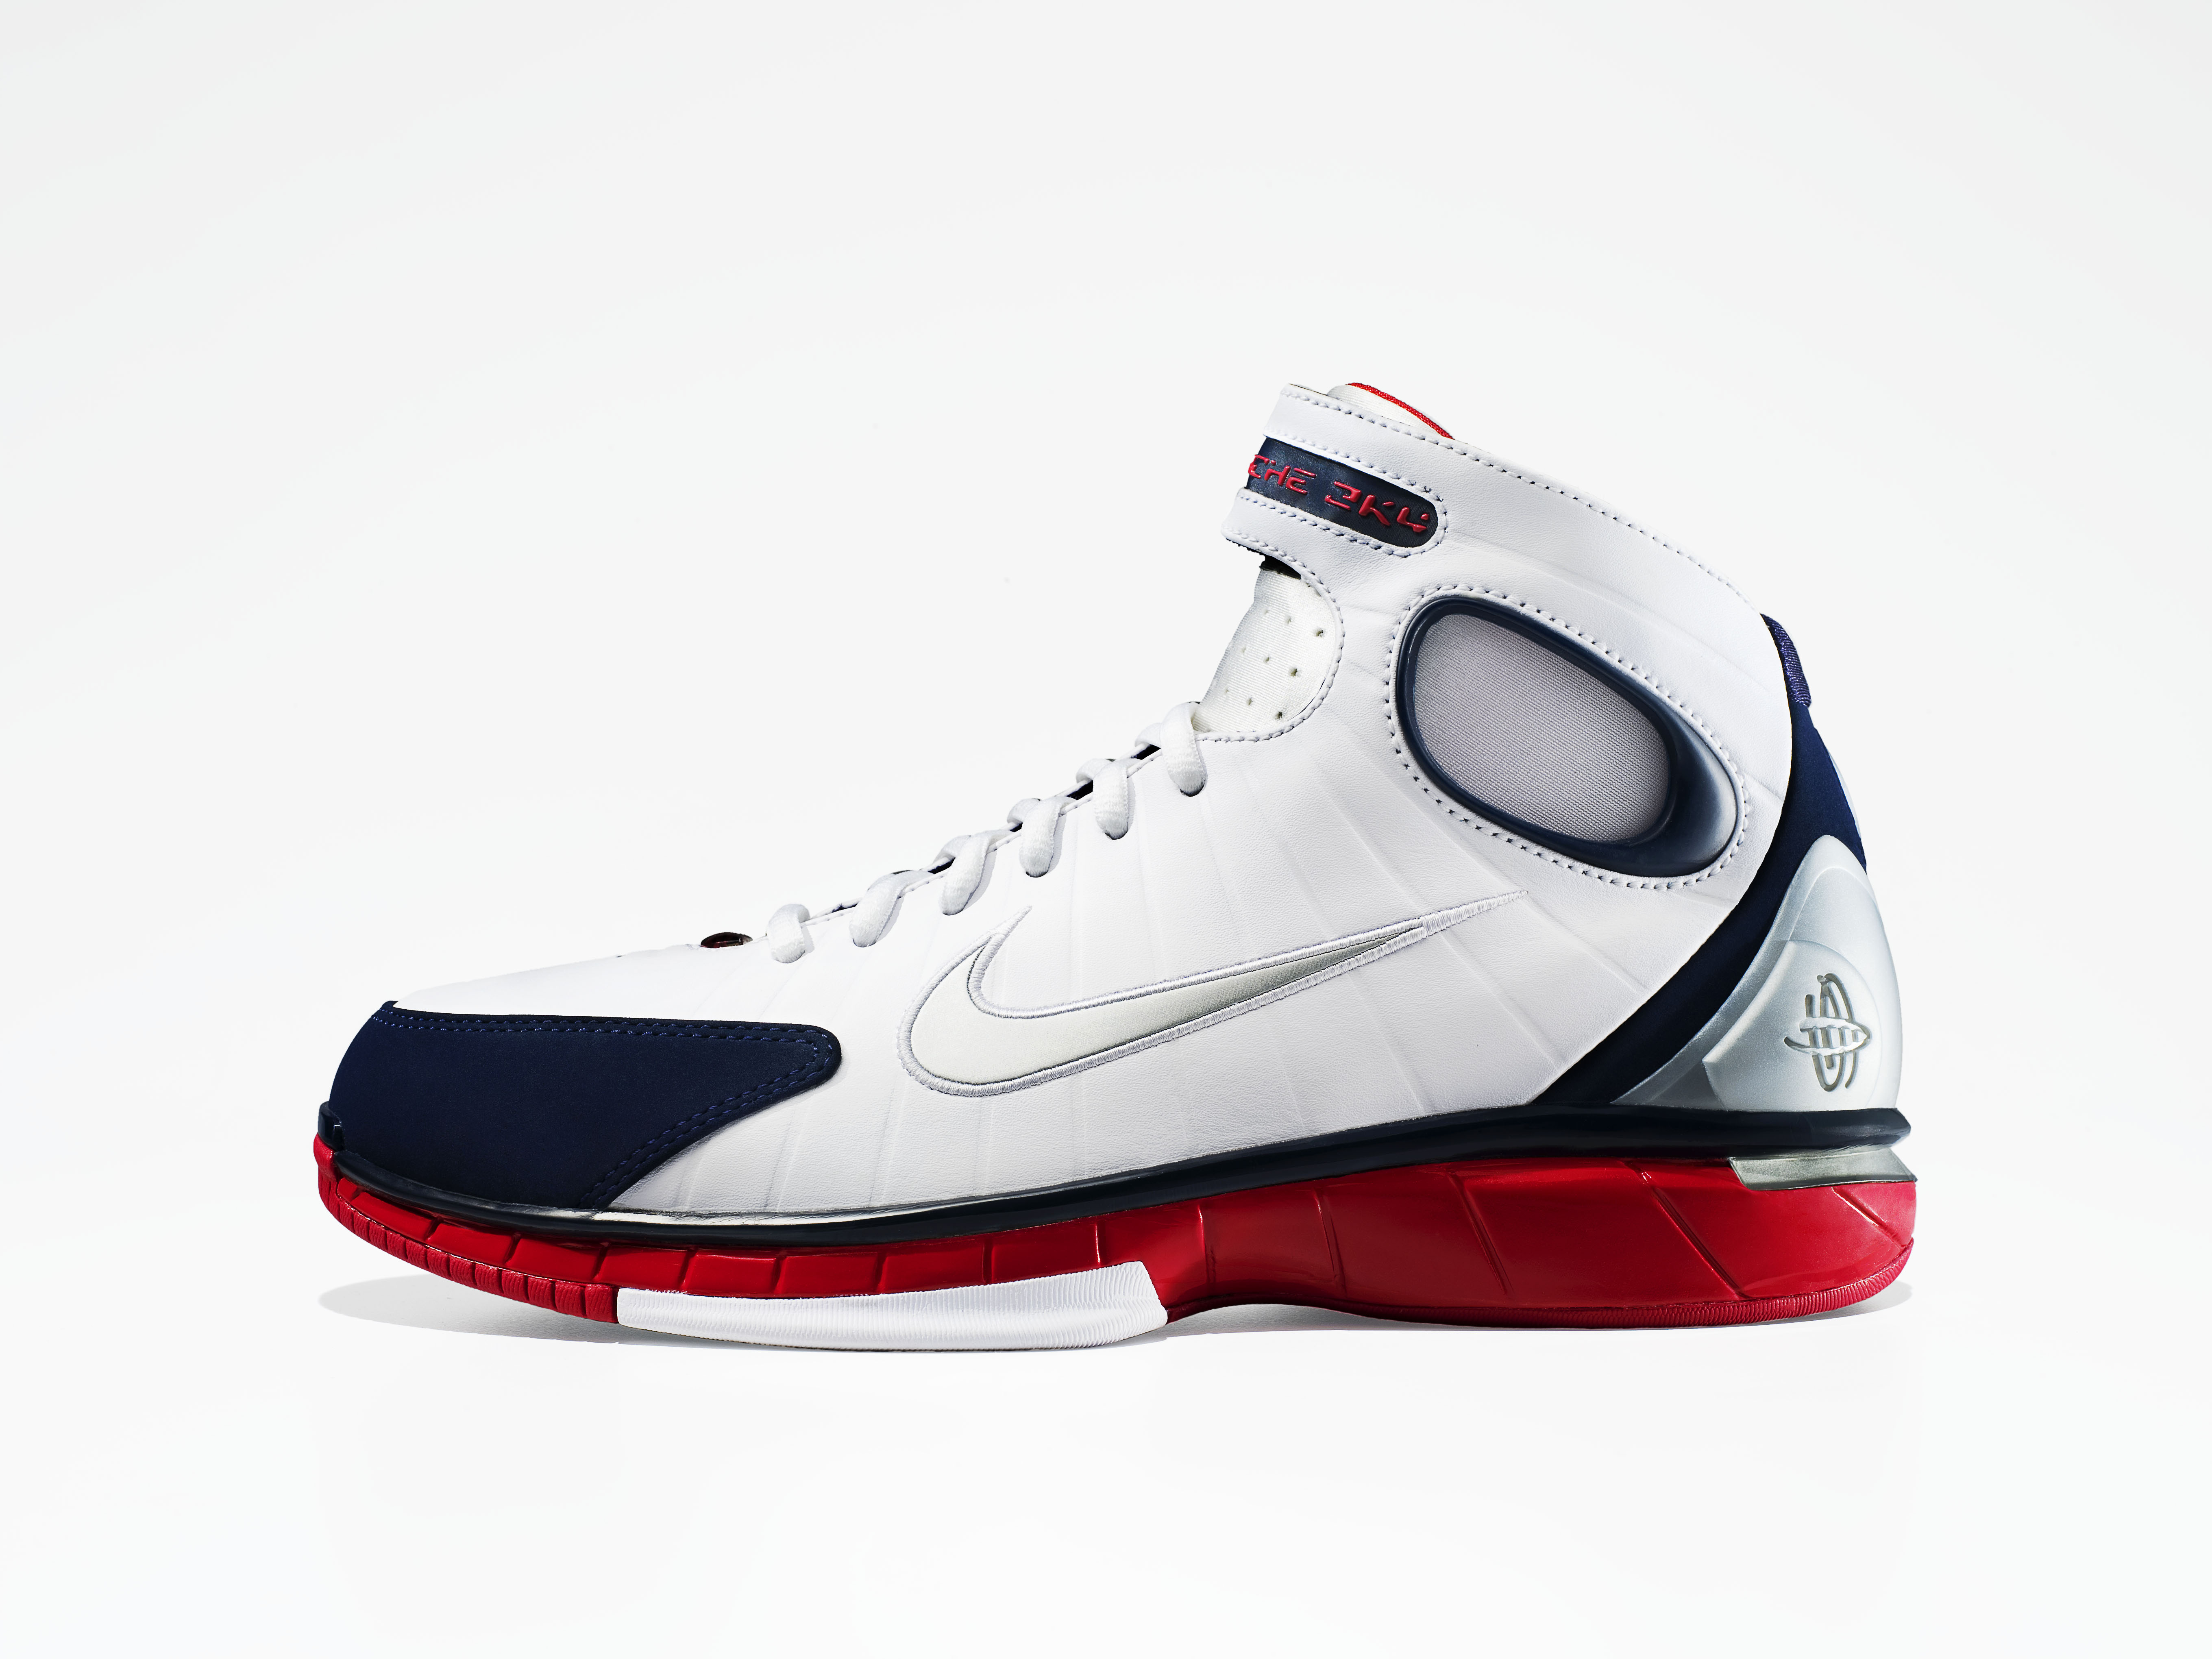 NIKE Sportswear pays homage to basketball's Dream Team - Nike News